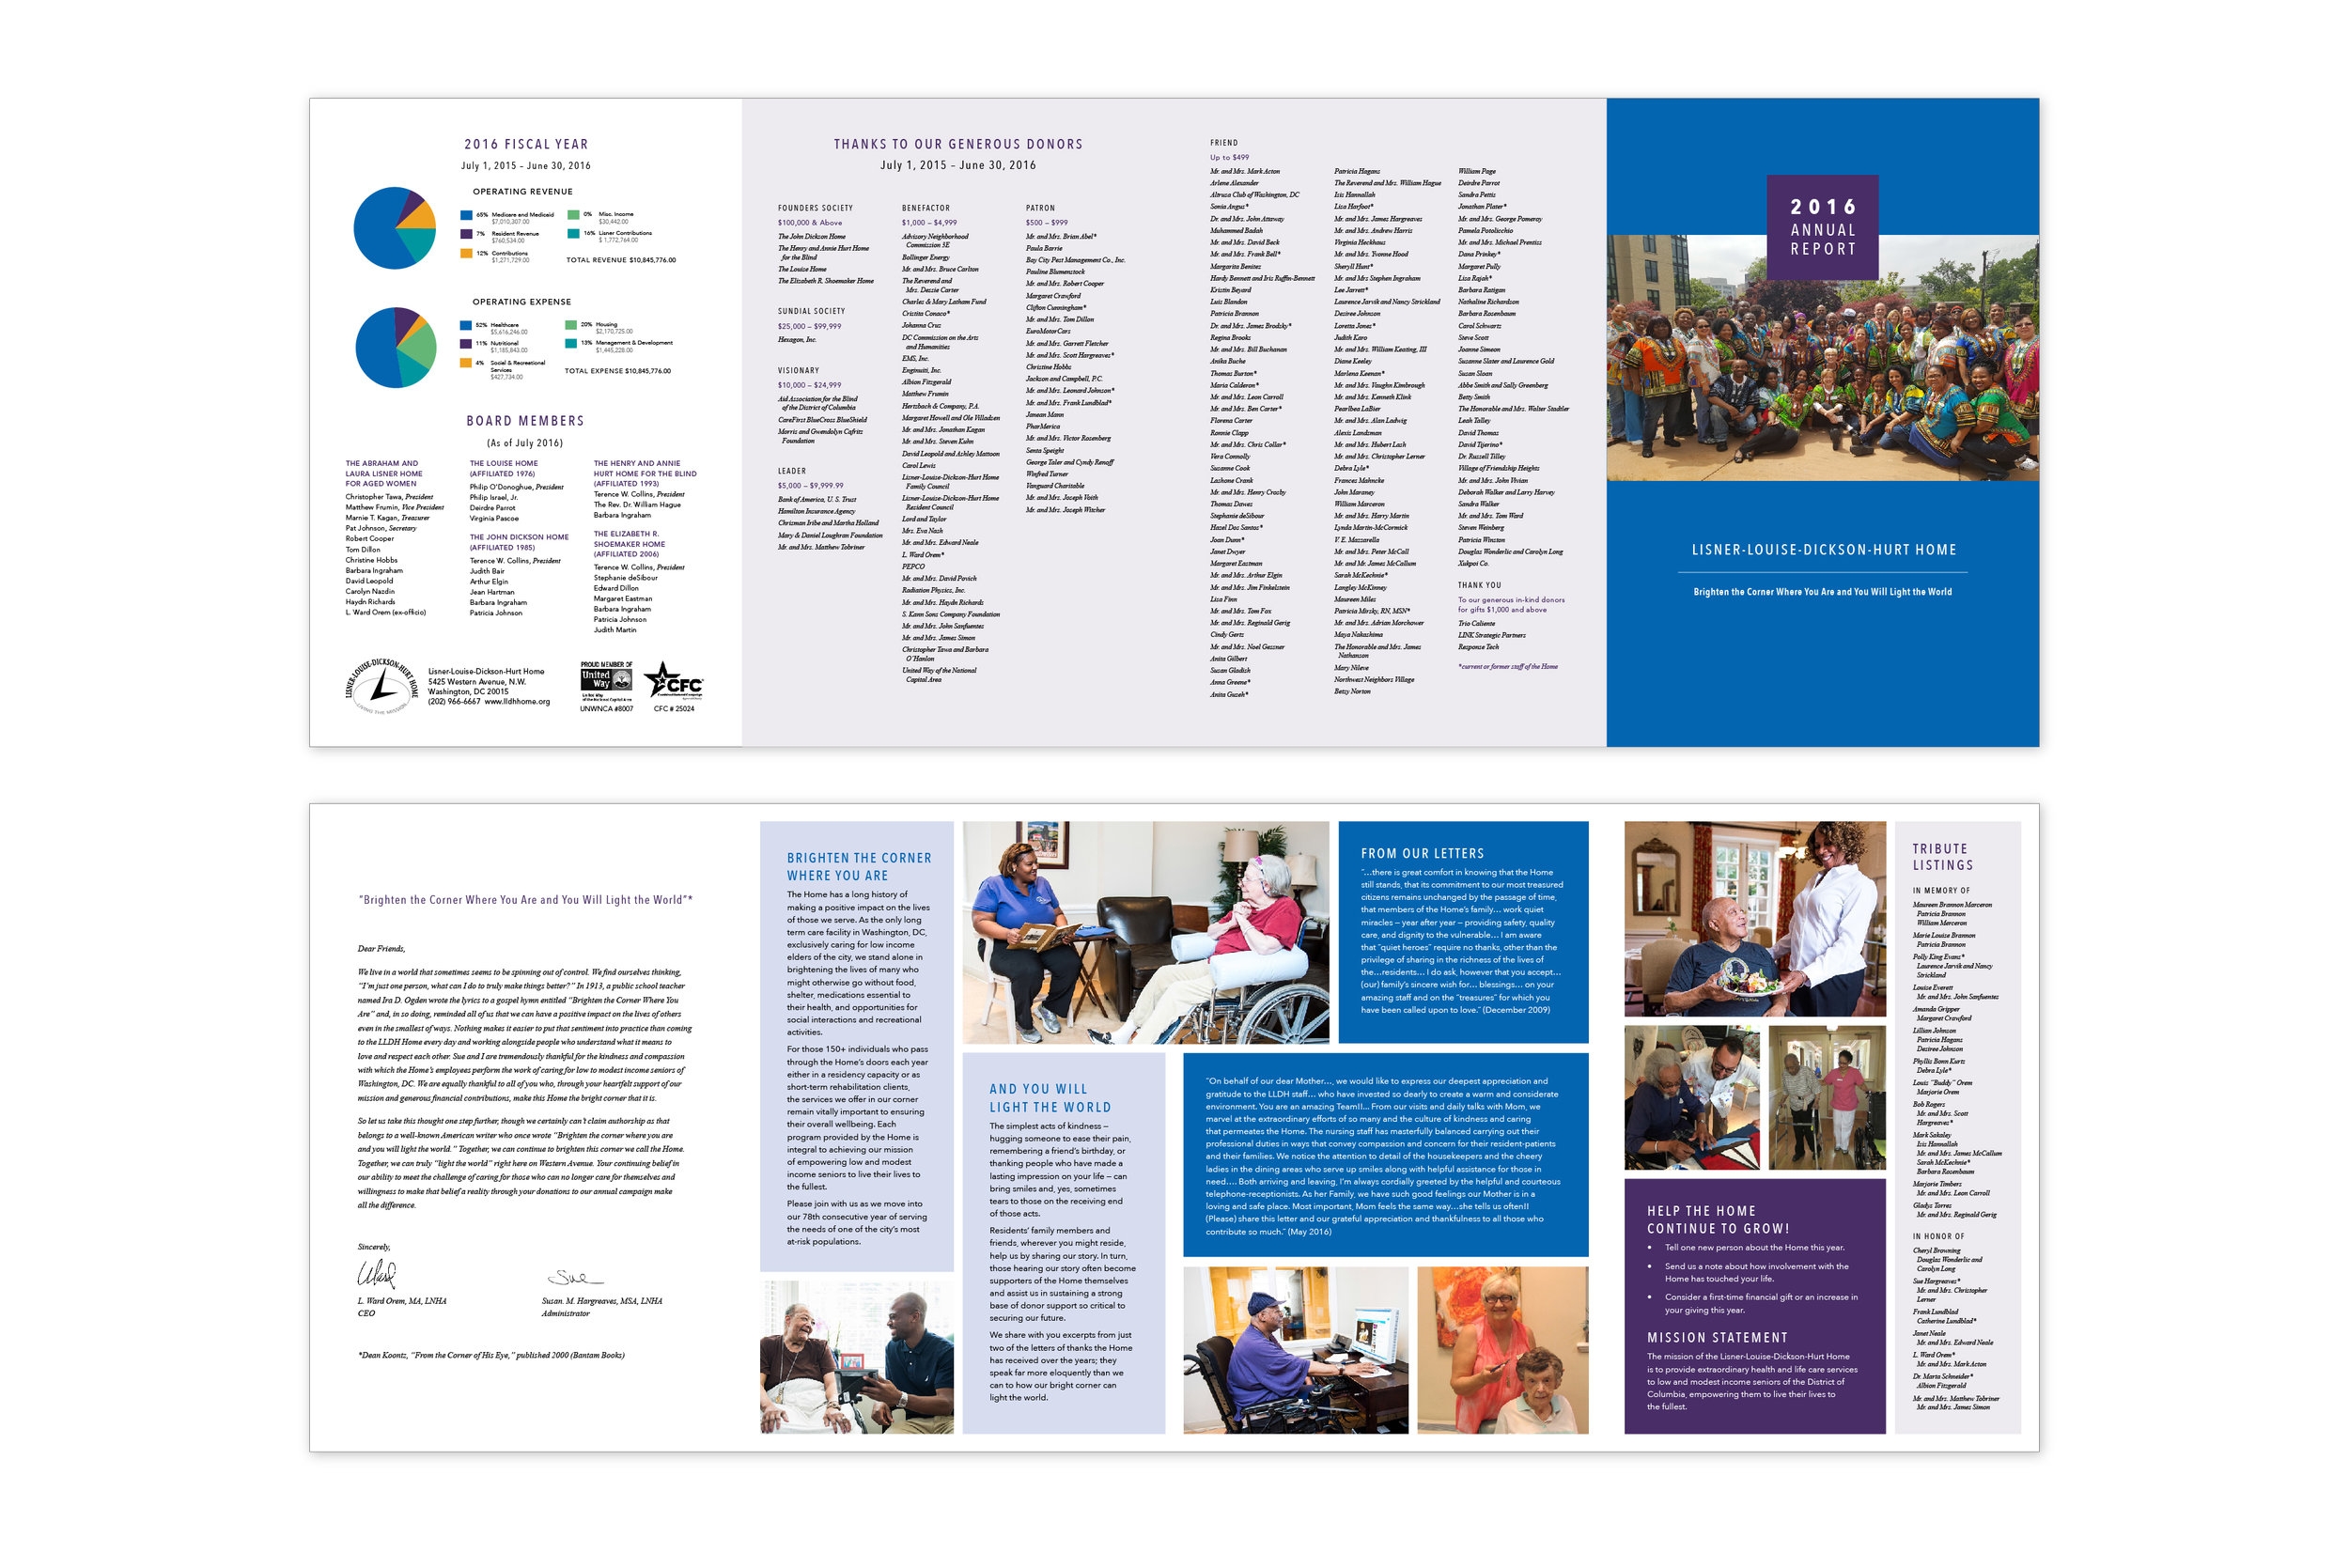 LLDHH_AnnualReport_2016_FINAL_Spreads-01.jpg